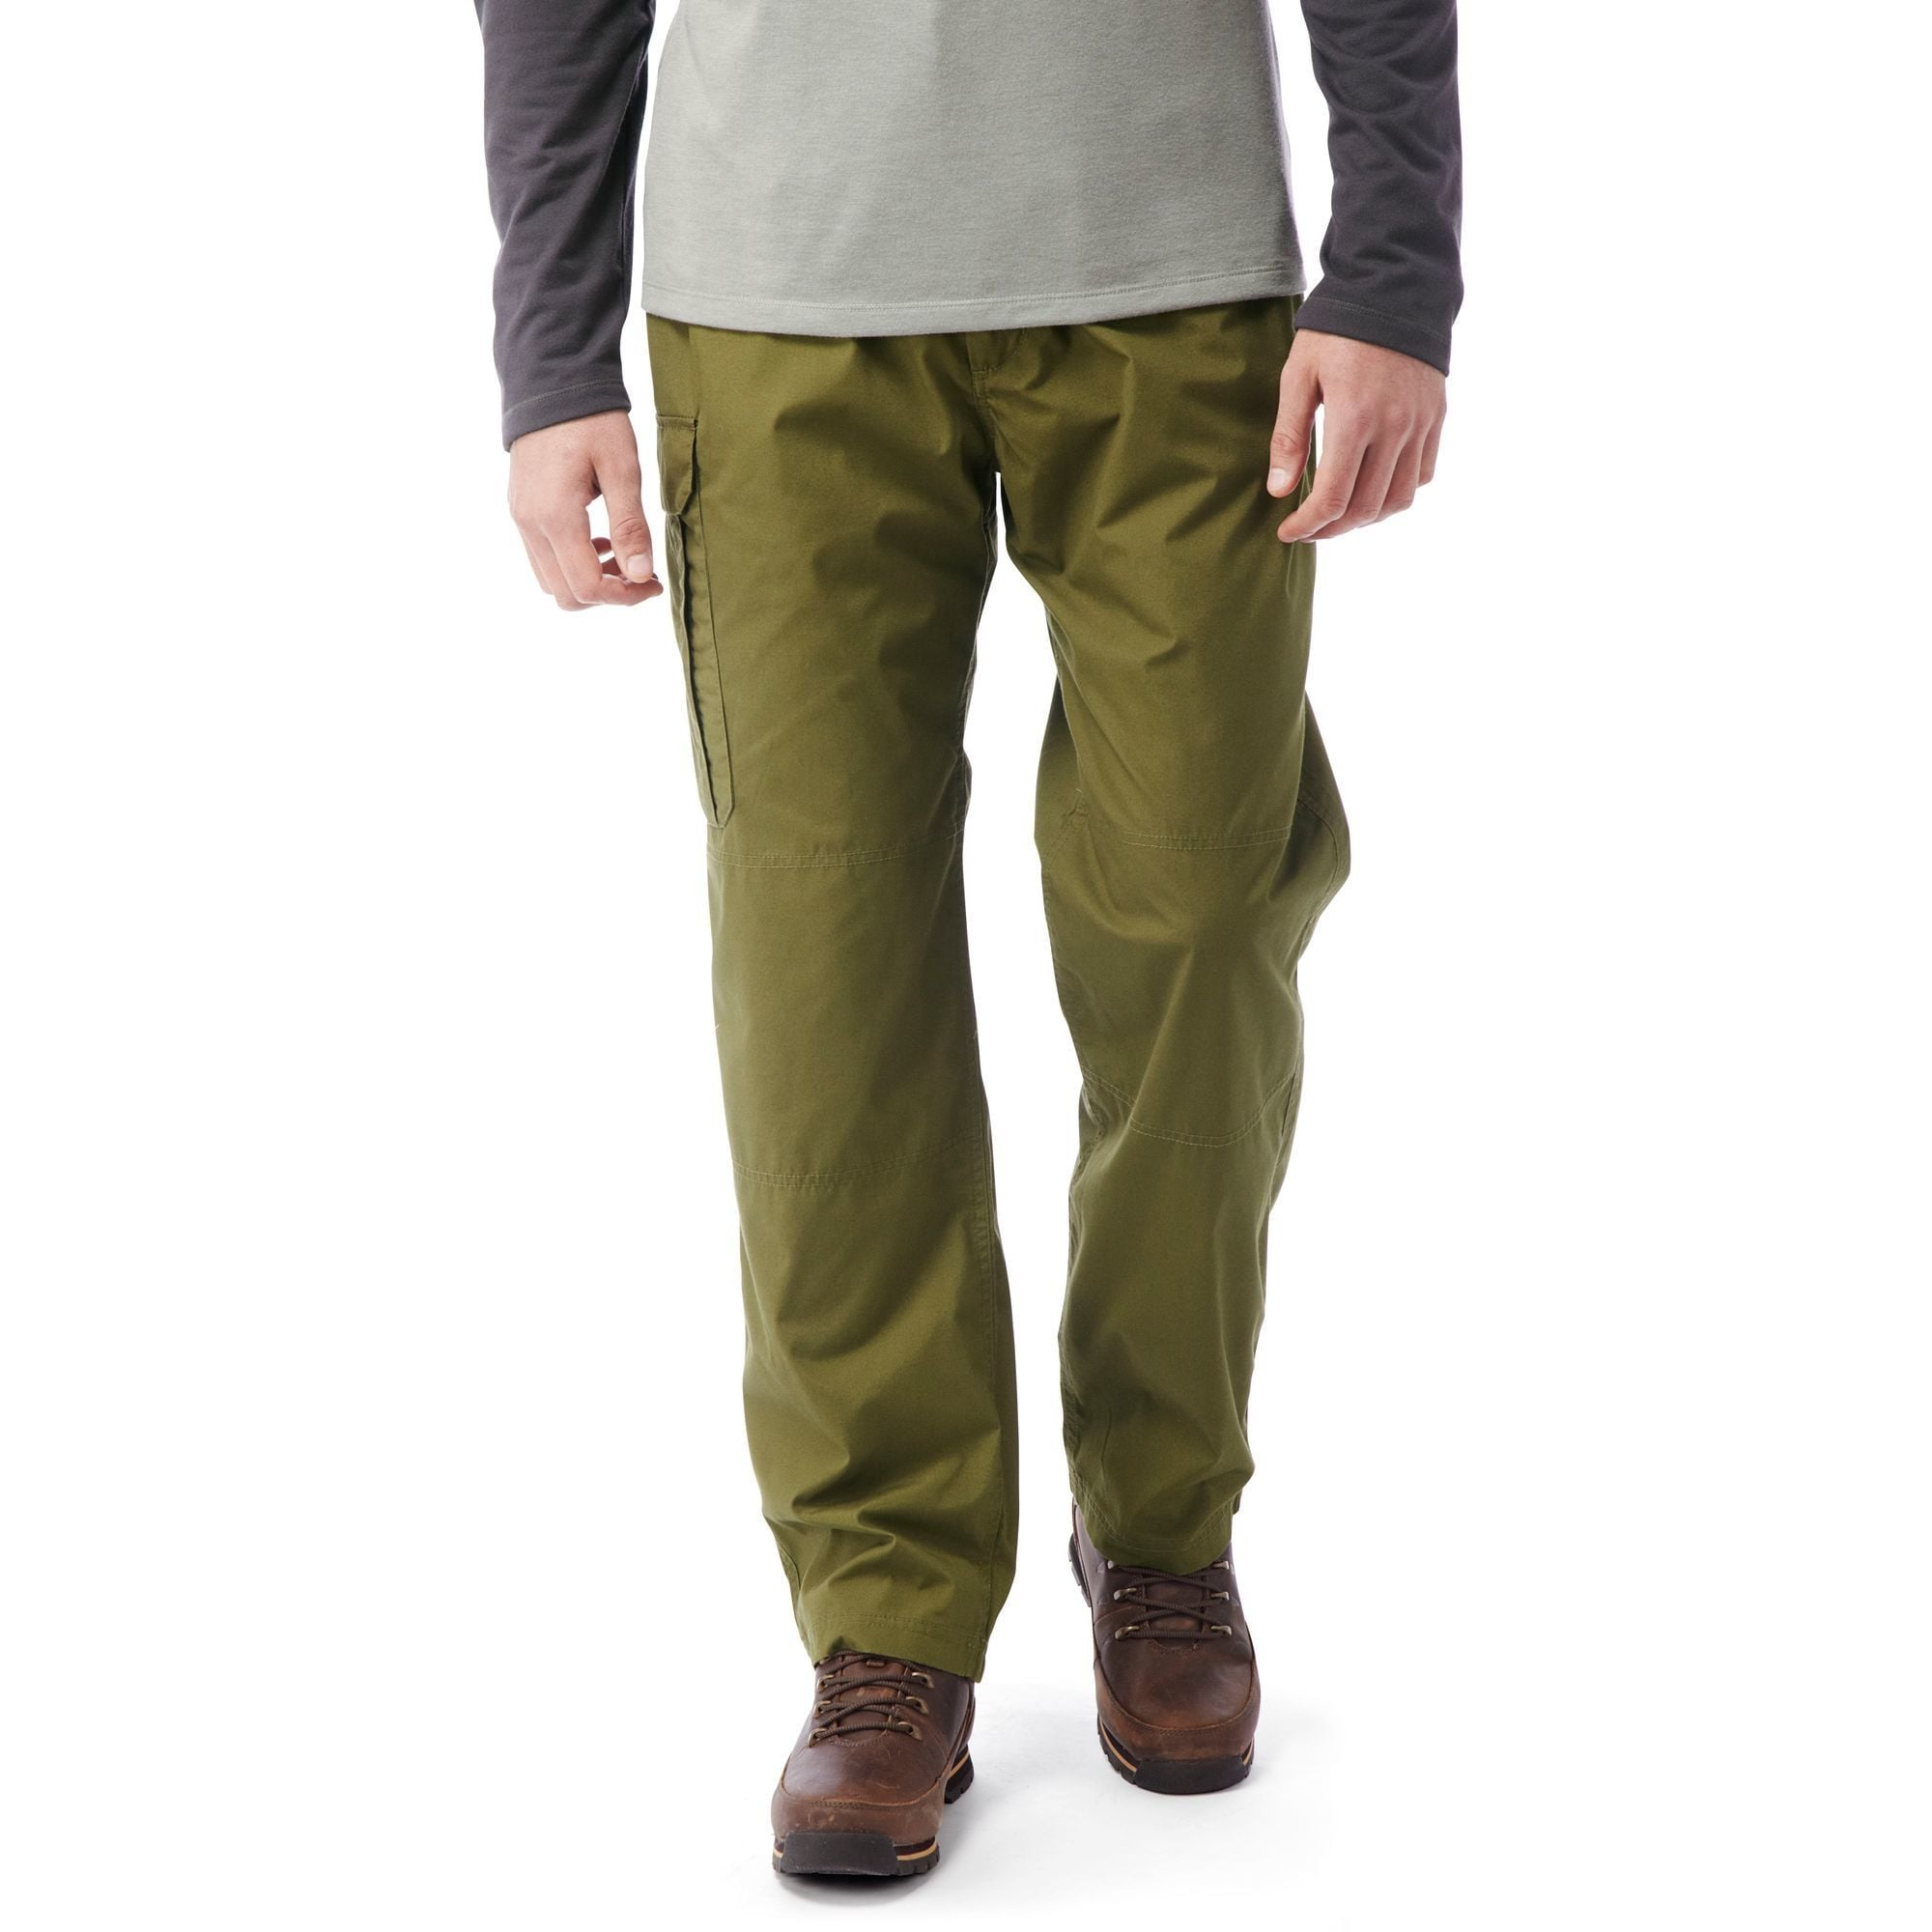 Craghoppers Mens Classic Kiwi Trousers Bark 36R